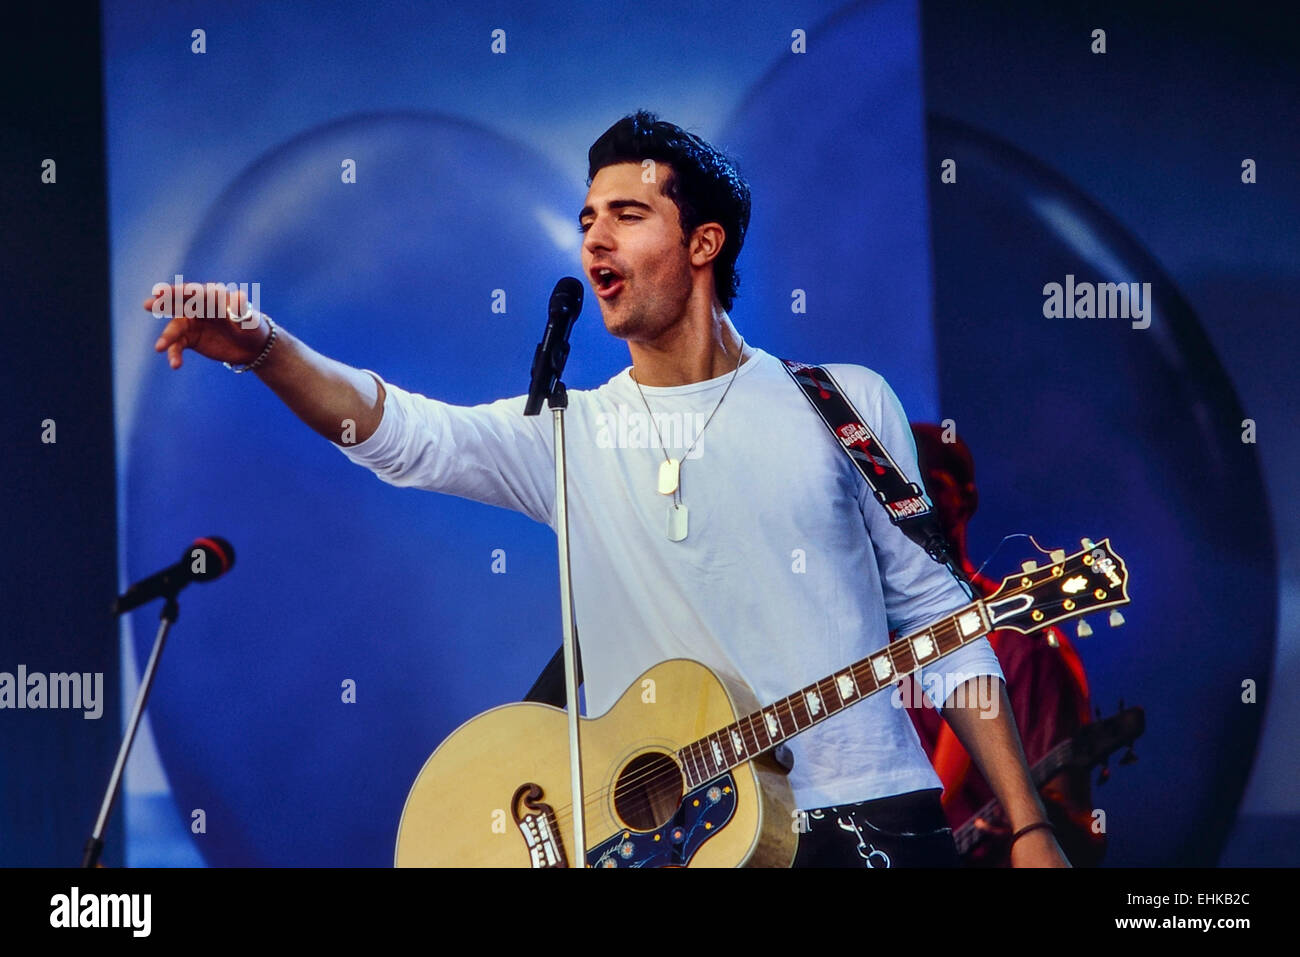 Darius Campbell performing live at a Blue Peter roadshow at Skegness. 29th July 2012 - Stock Image